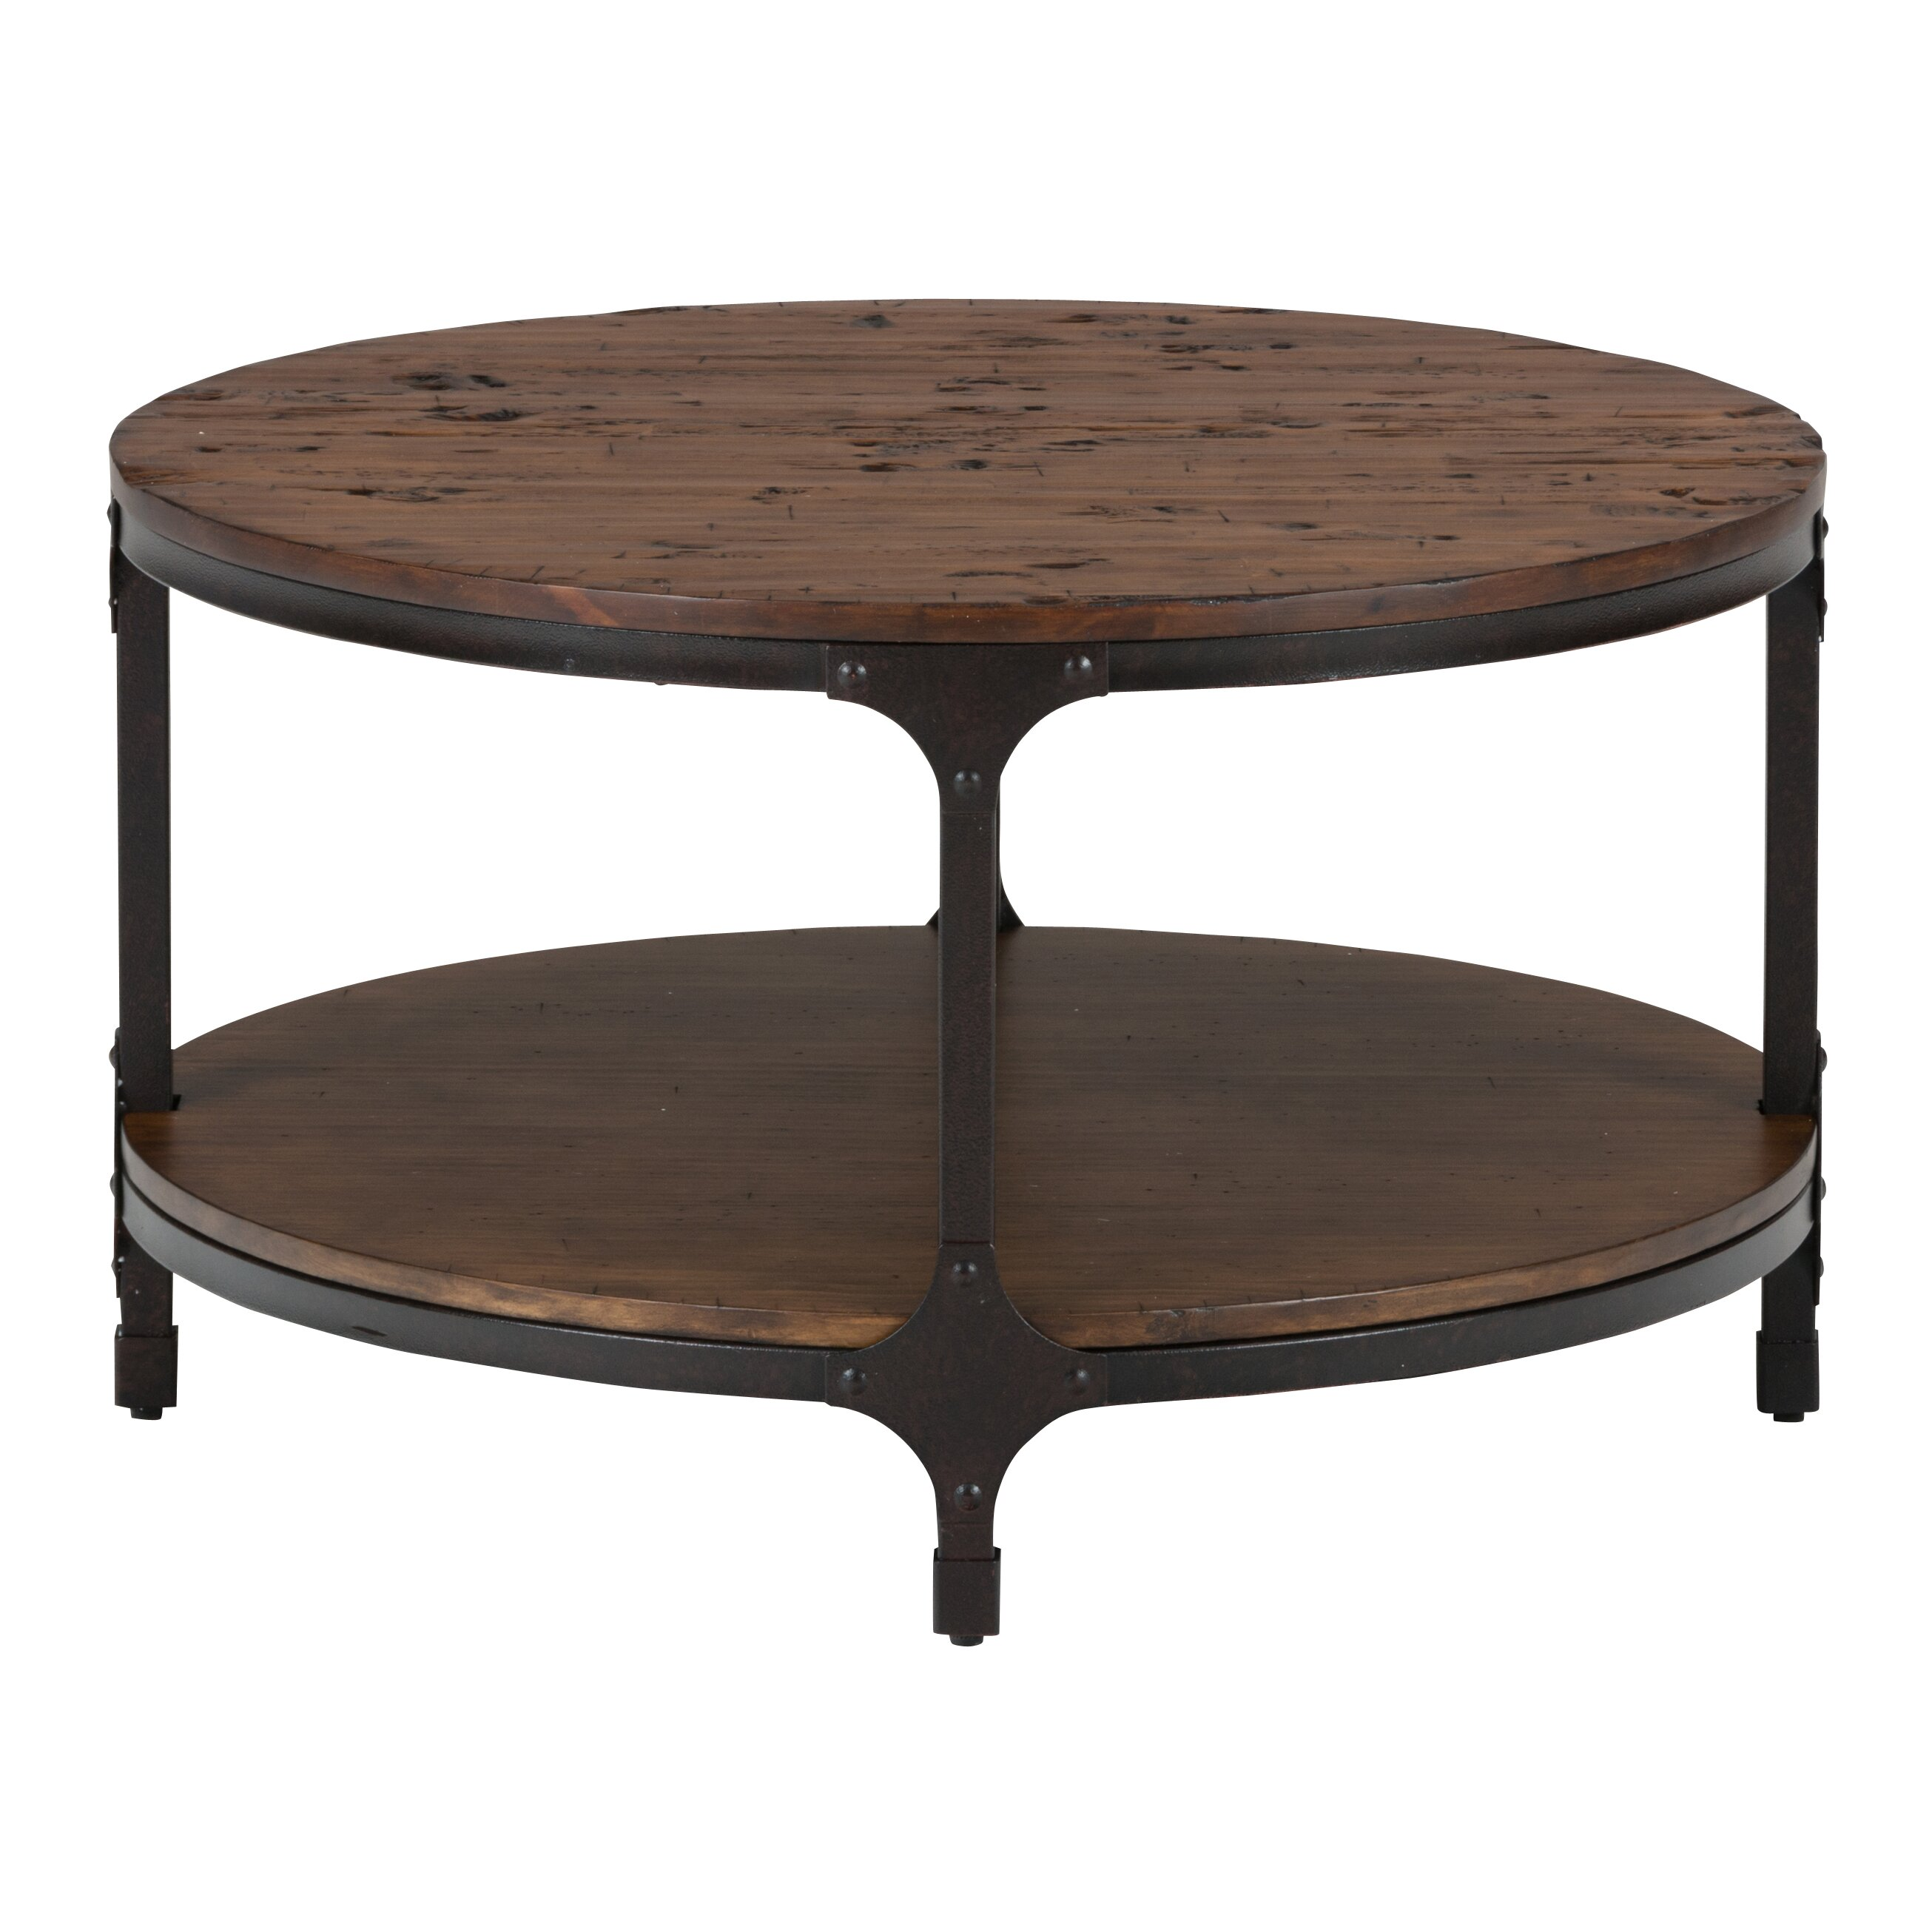 36 Inch Round Table Top Round Coffee Tables Youll Love Wayfair